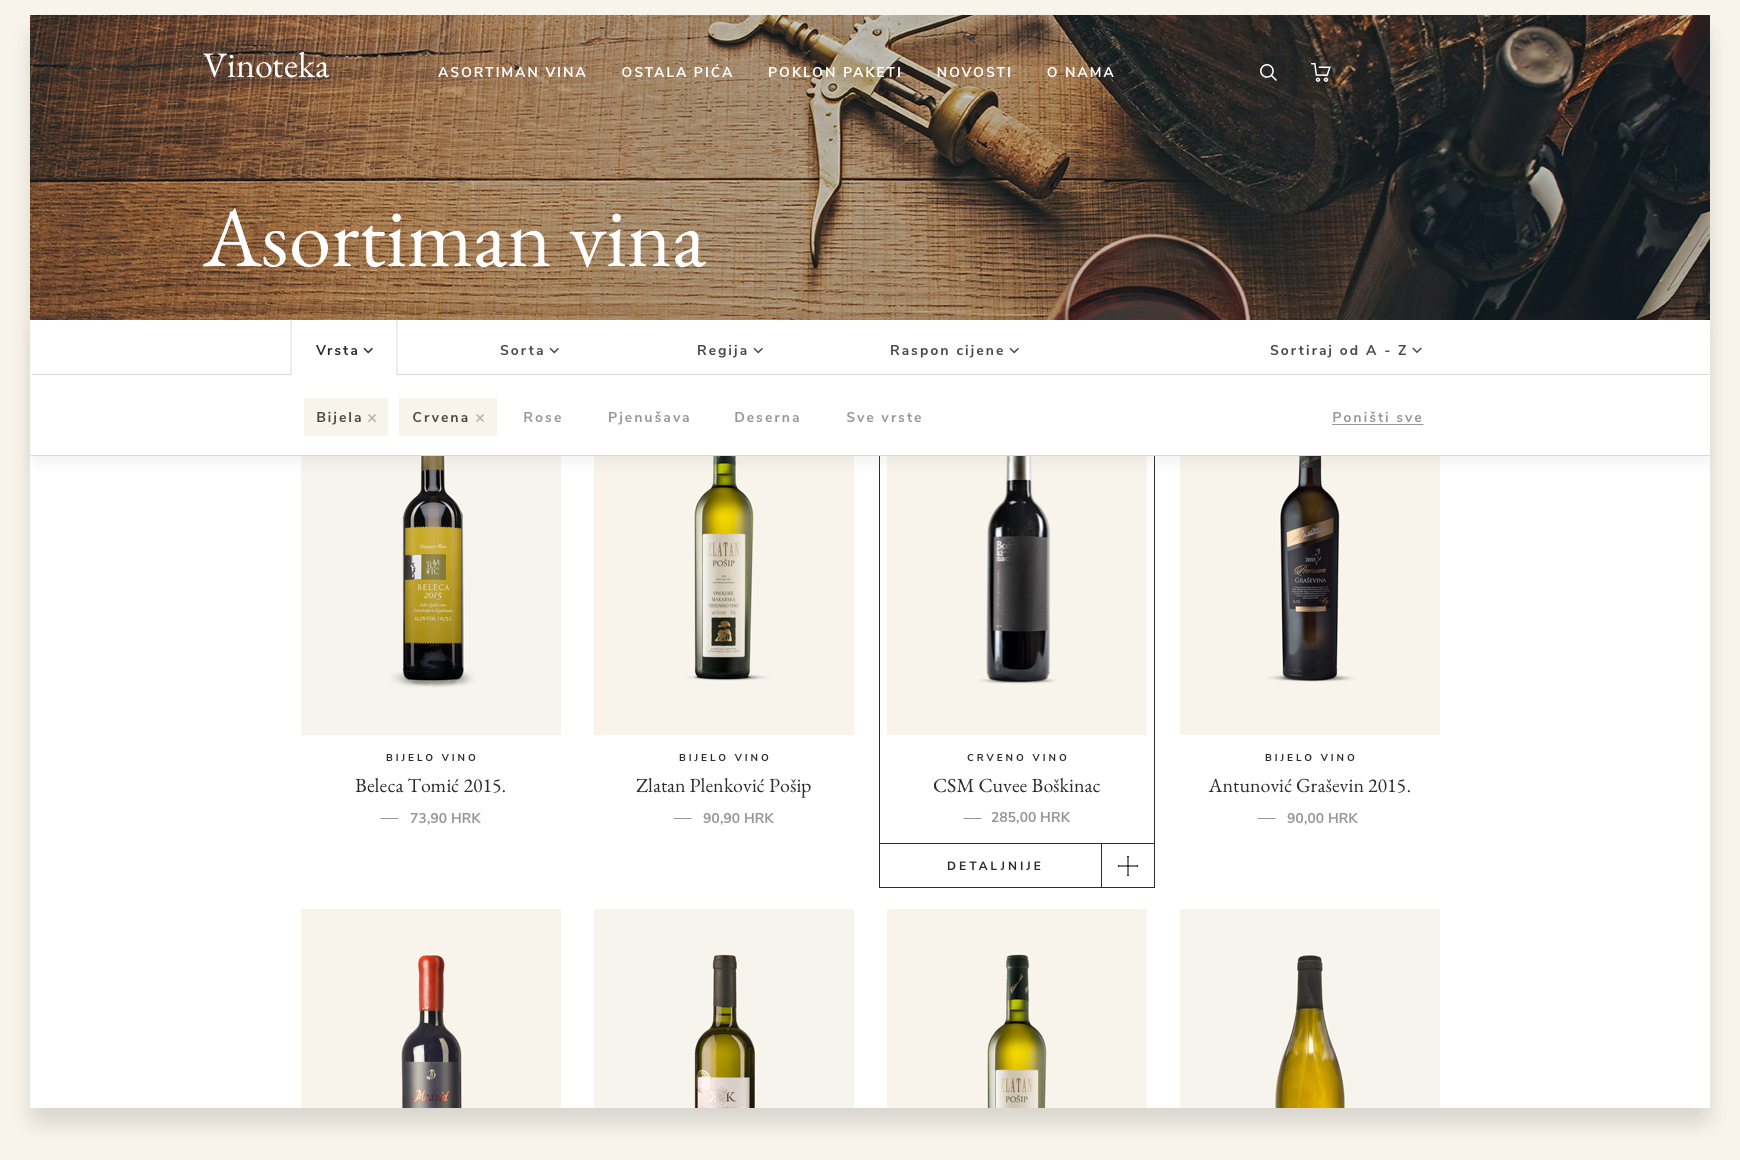 list of wine bottle items from Croatian producers